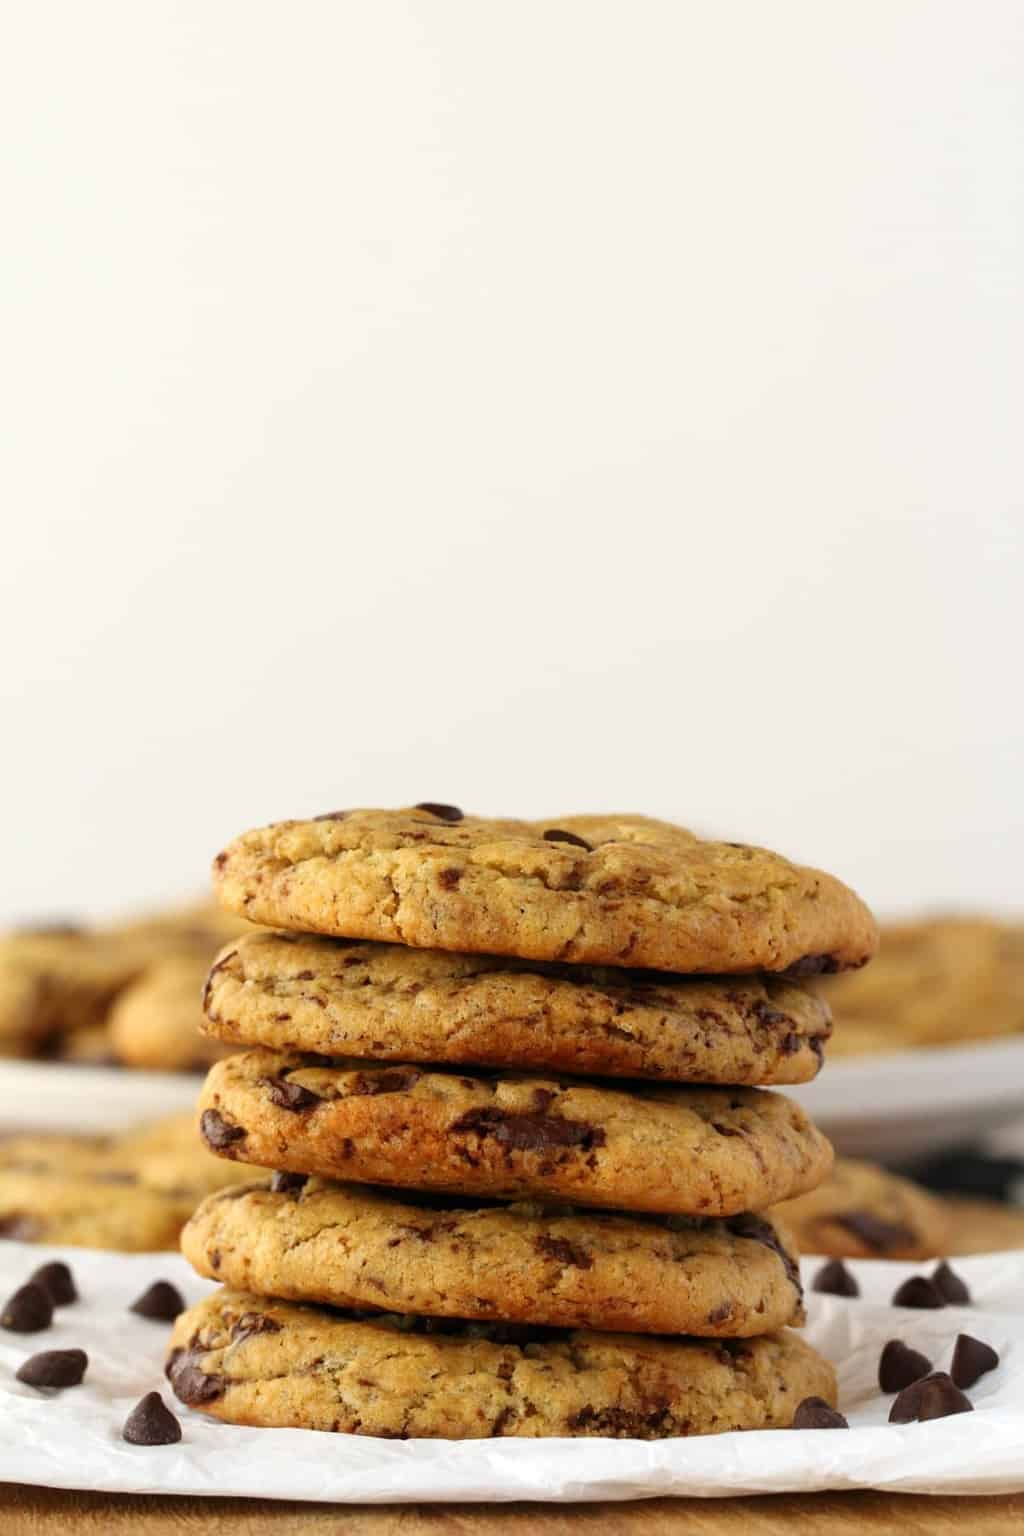 Vegan Chocolate Chip Cookies in a stack on white parchment paper.